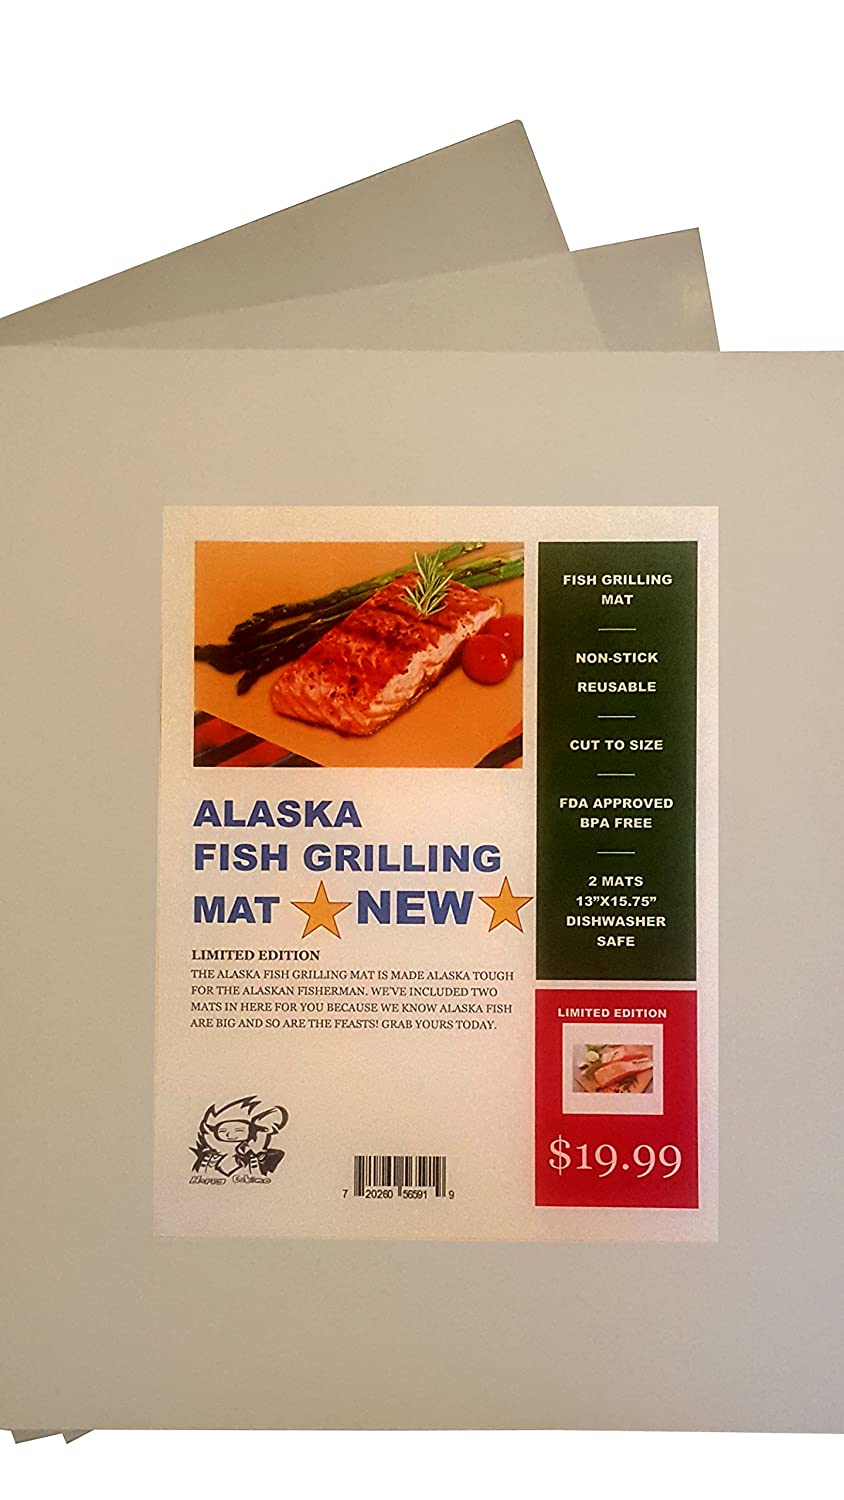 Alaska Fish Grilling Mat Set of 2- FDA Approved Nonstick, Teflon Sheet BBQ Mats, Reusable Dishwasher Rack Safe For Gas, Electric, Charcoal, Barbecue Grill Cooking And Baking 100% PFOA Free bbq Liner